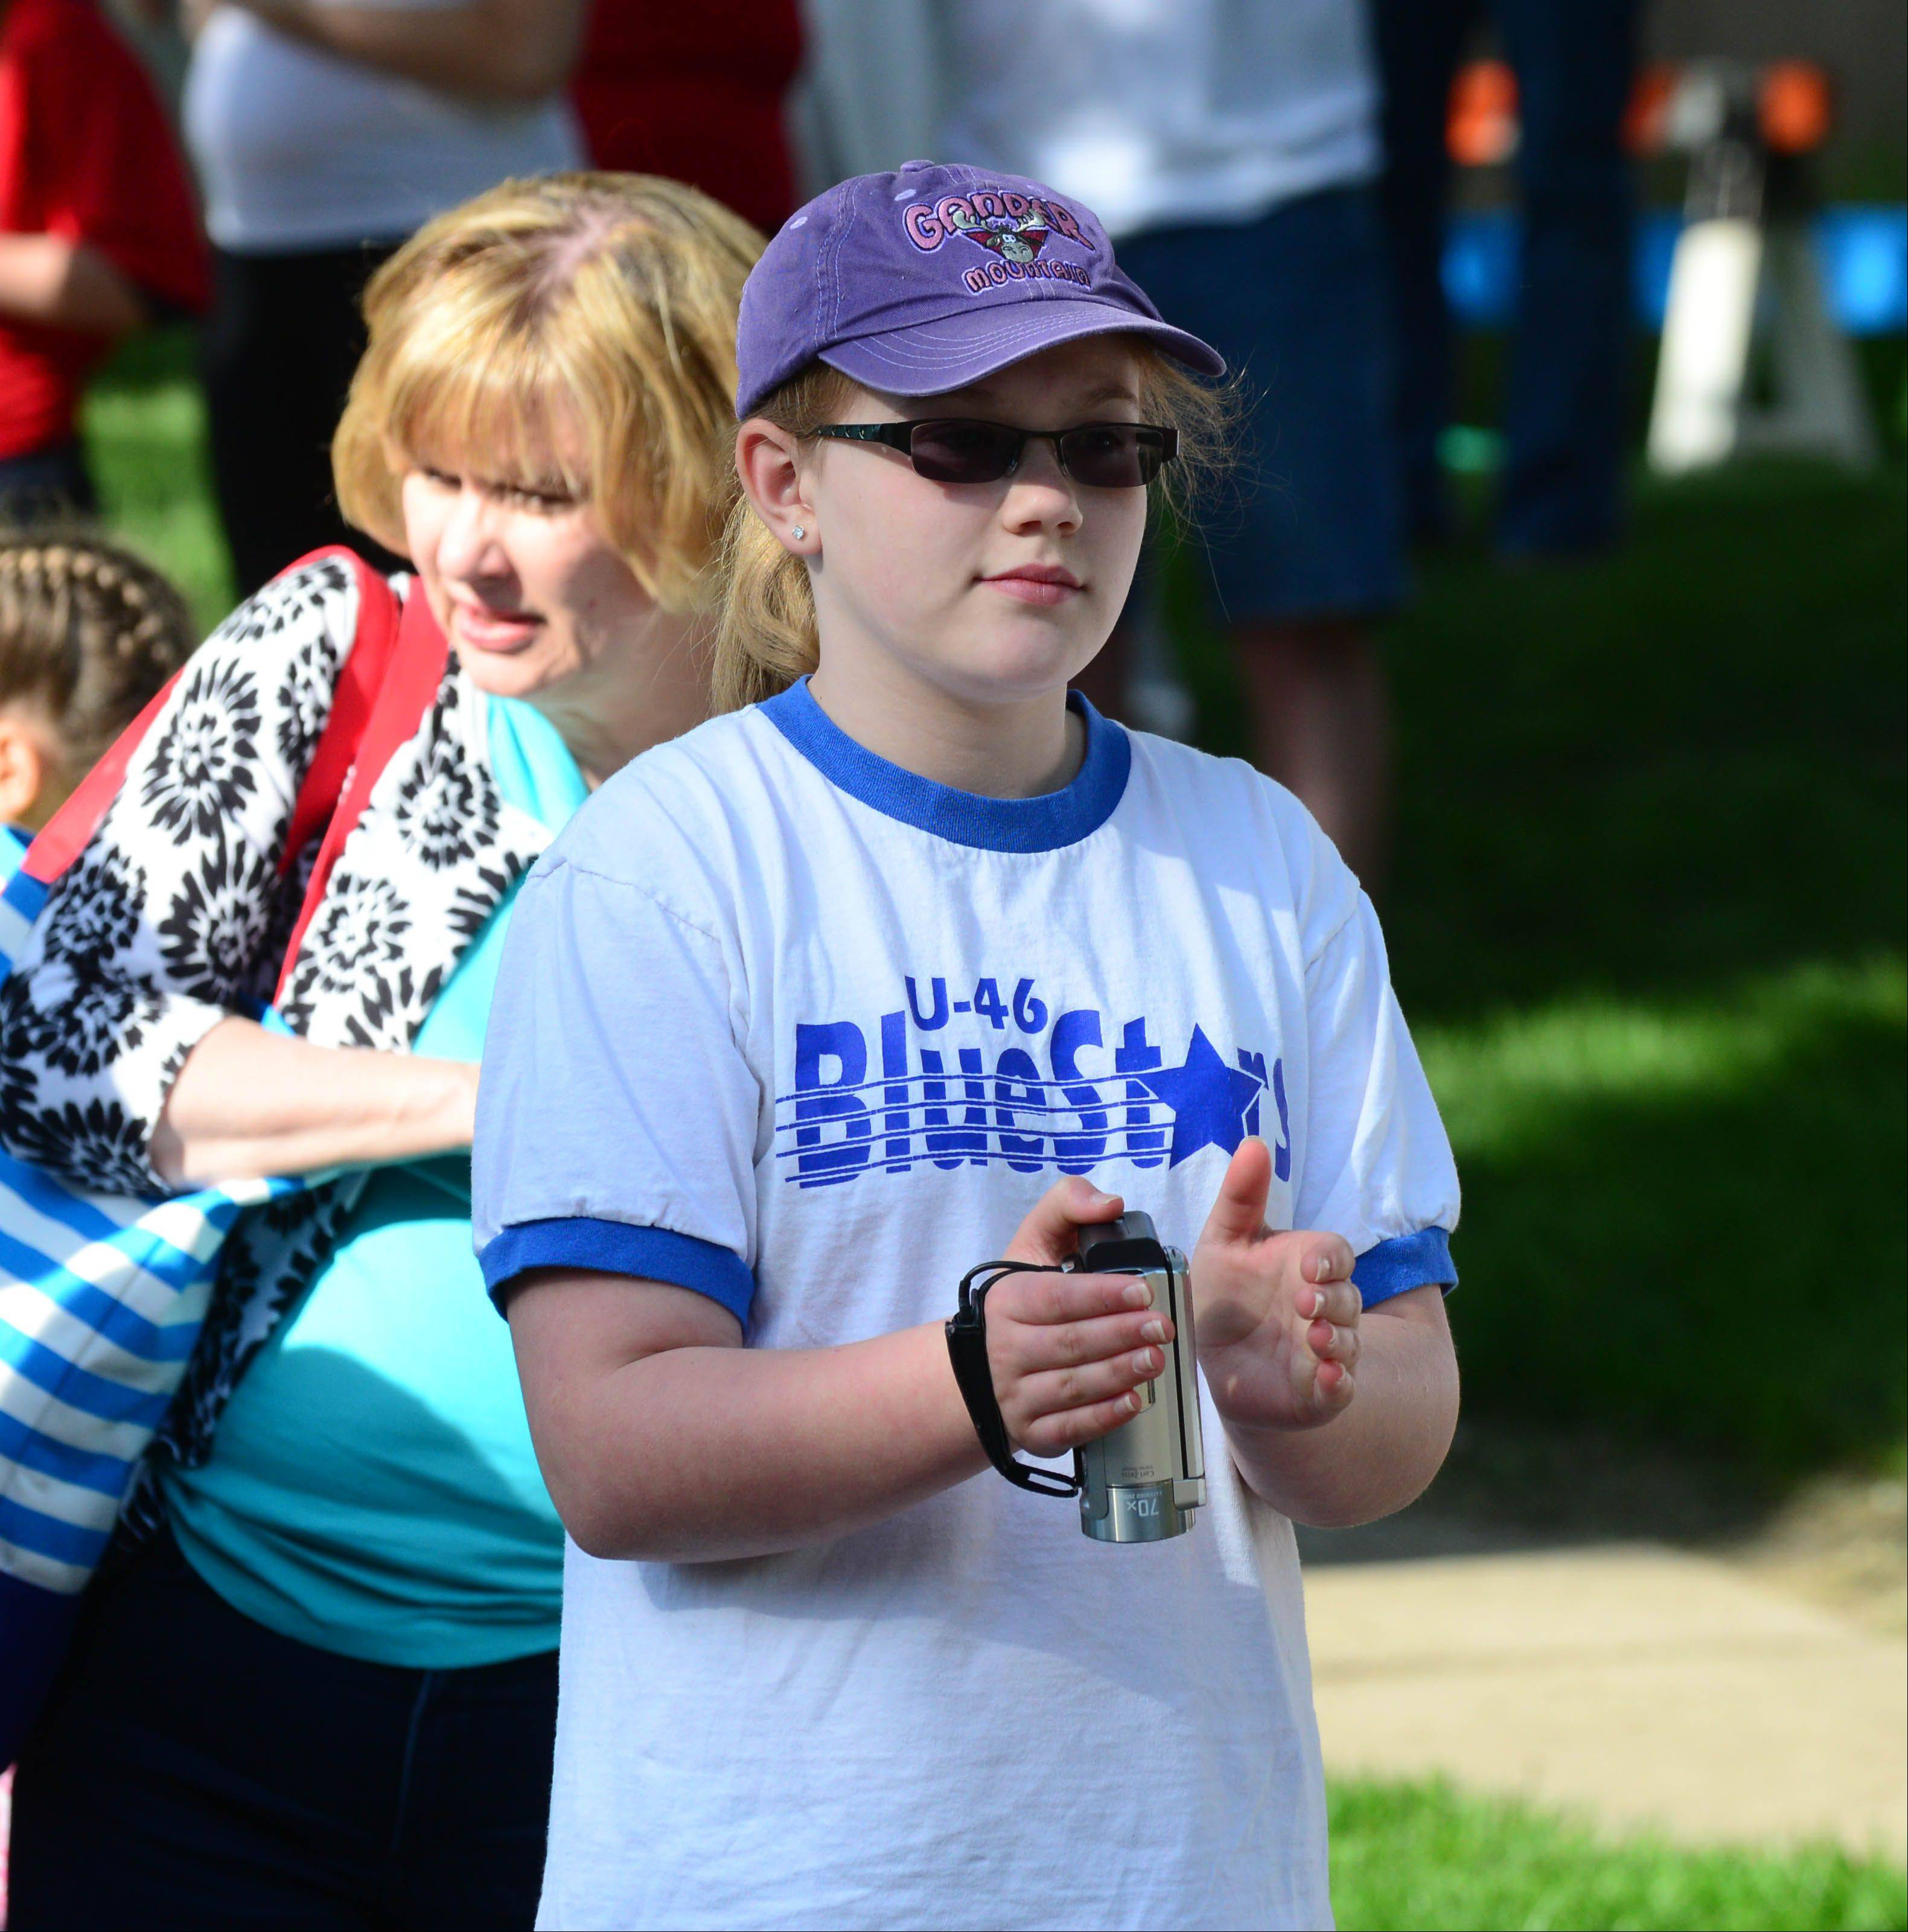 Rooting for the myTeam Triumph trio pushing her 9-year-old brother Jeremy in a wheelchair stroller, Cara Johnson, 13, of Streamwood cheers on the runners Saturday in Wheaton's Run For The Stars 5-K.